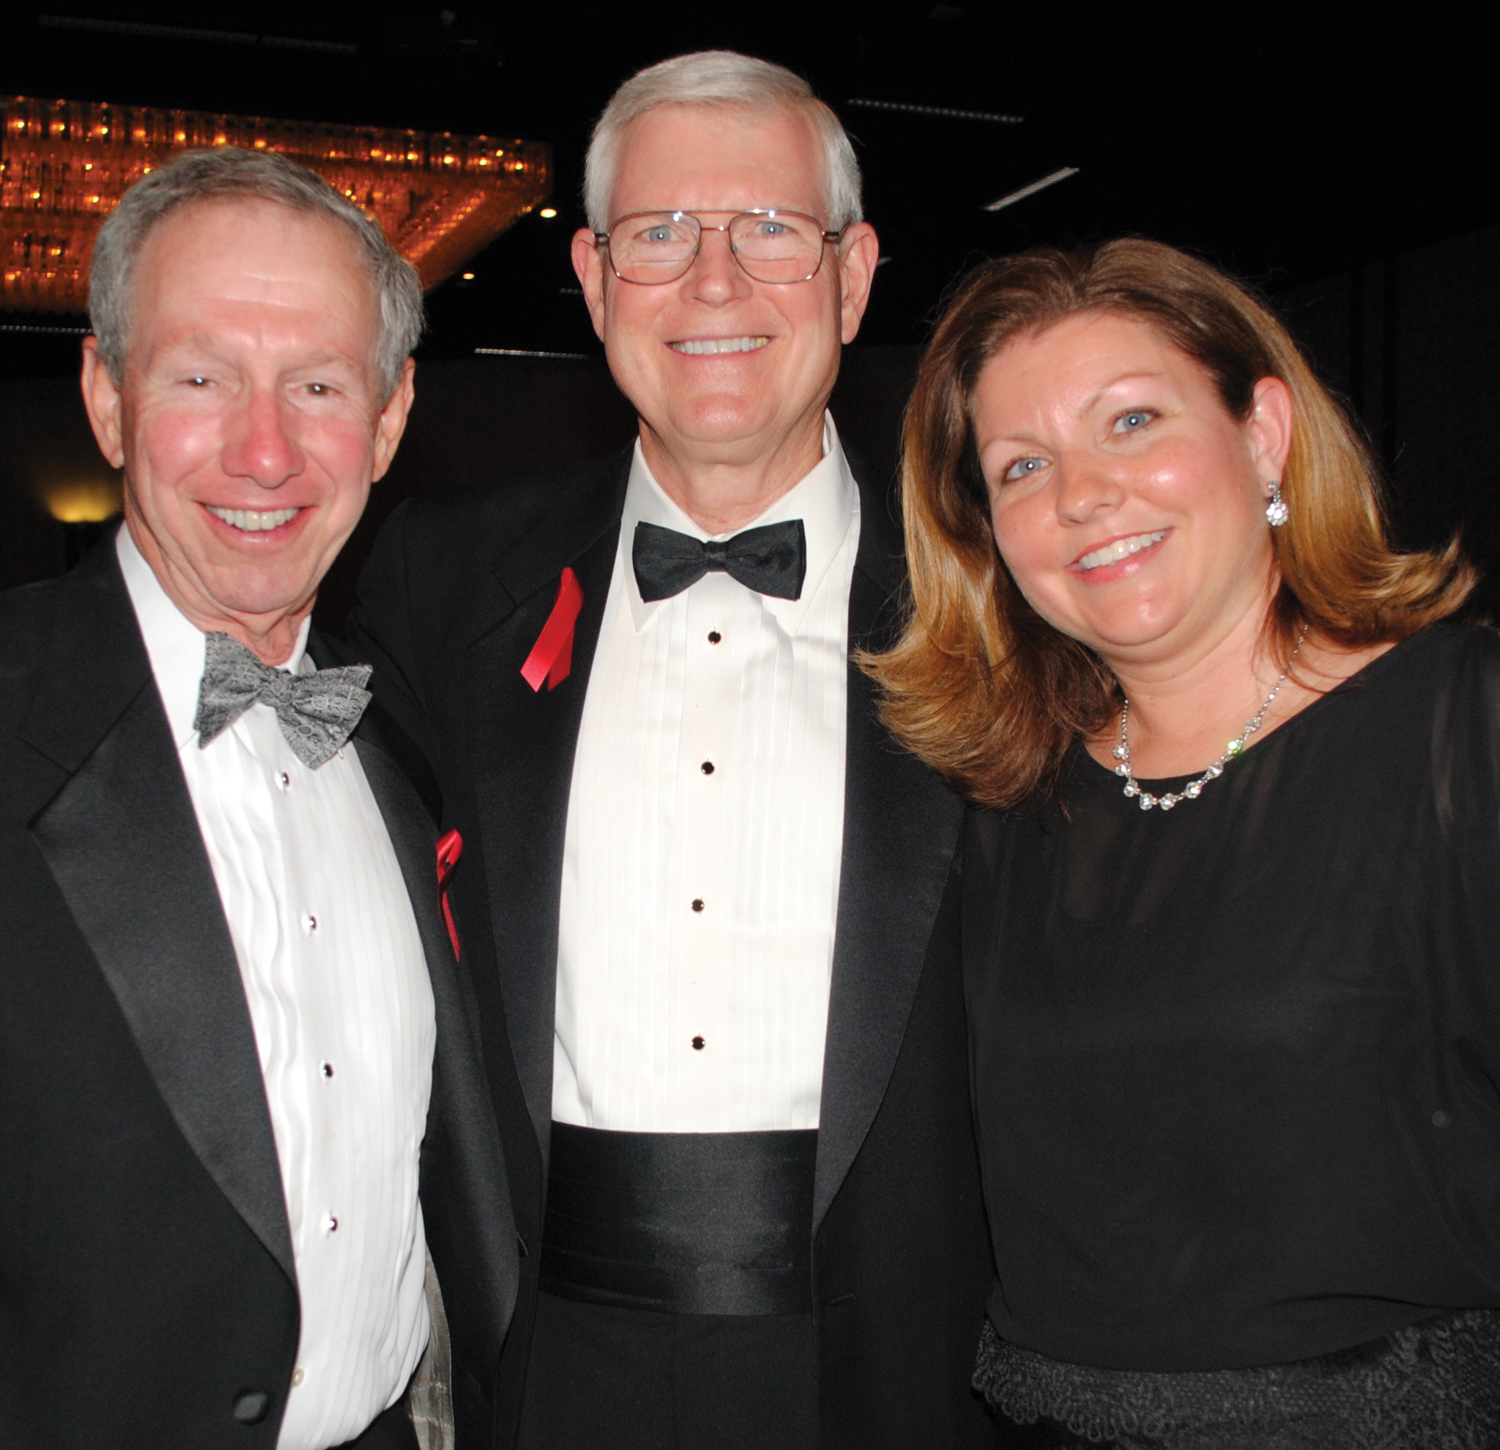 The 2012 Space Trophy winner and retired JSC Director Mike Coats, and his daughter, Lauren Larkin, right, visit with former NASA Administrator Dr. Michael Griffin, the 2009 Space Trophy winner who came up from Huntsville, Ala., for the Space Gala.